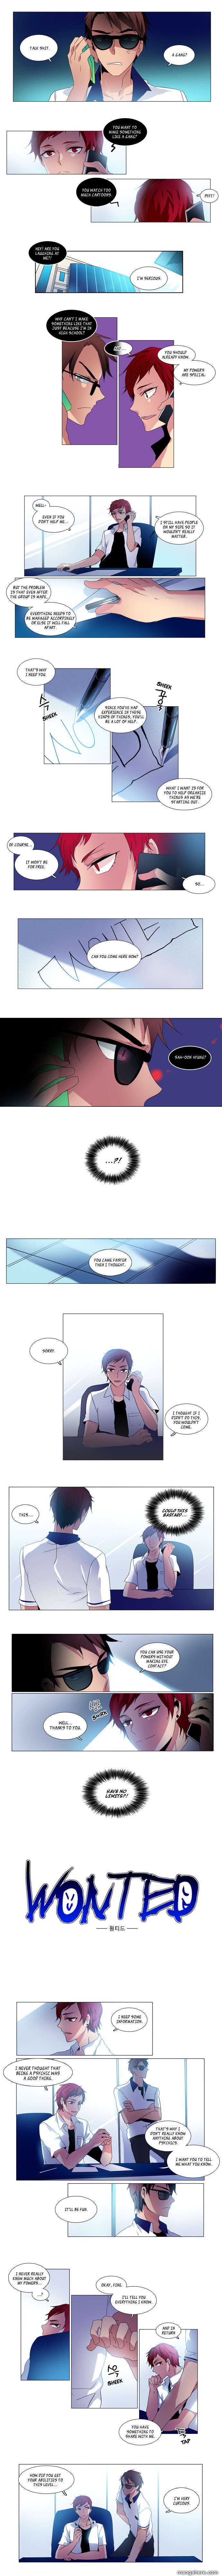 Wonted 17 Page 2